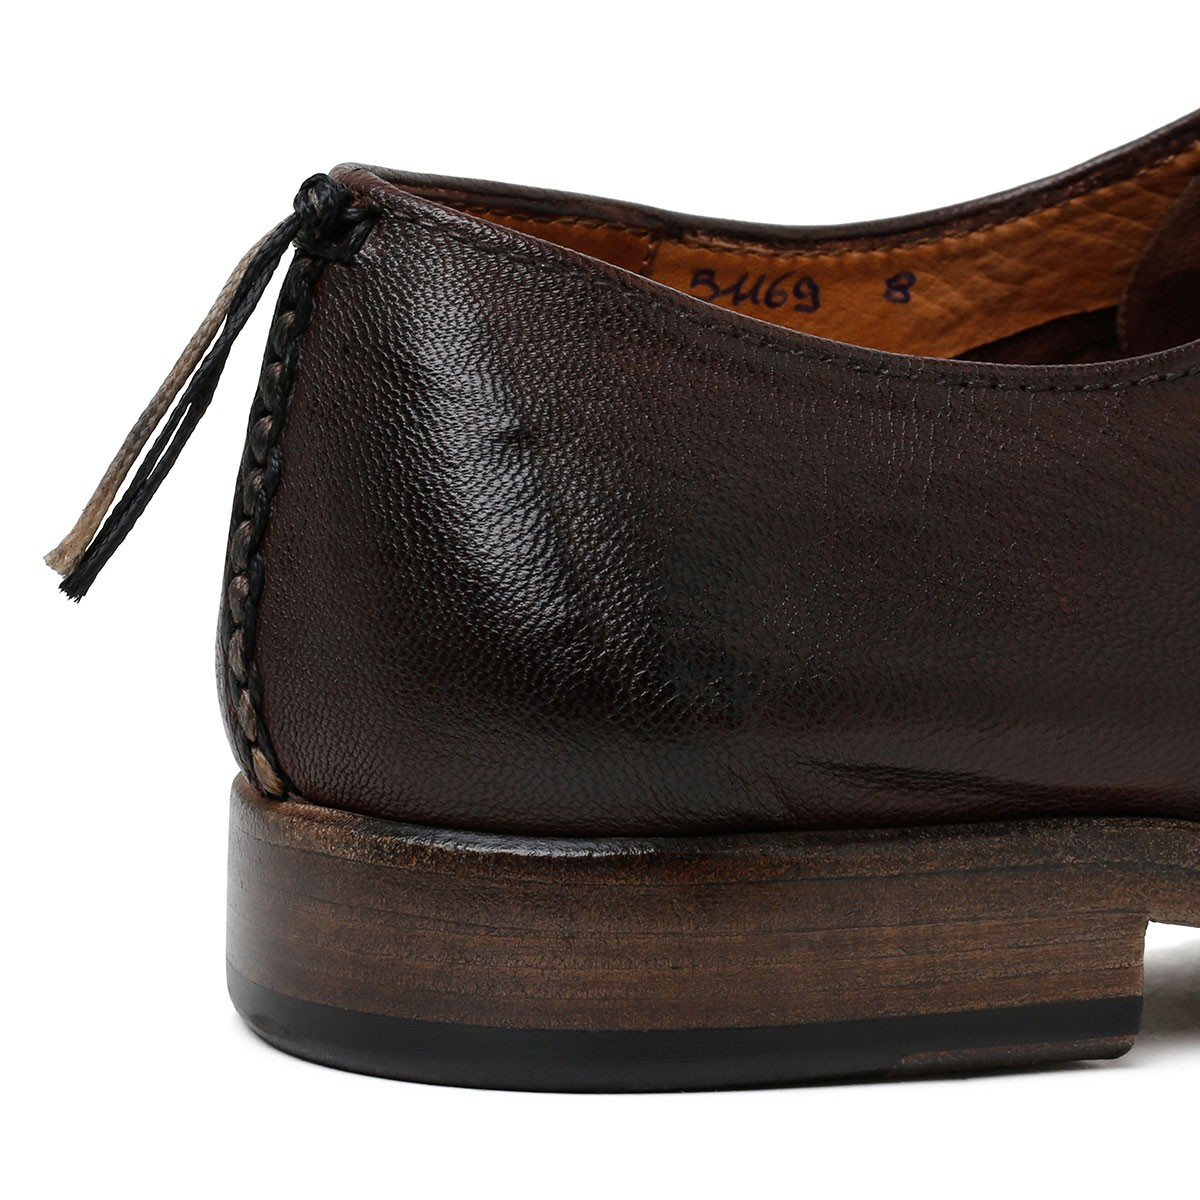 Derby shoes in chocolate Matrix leather